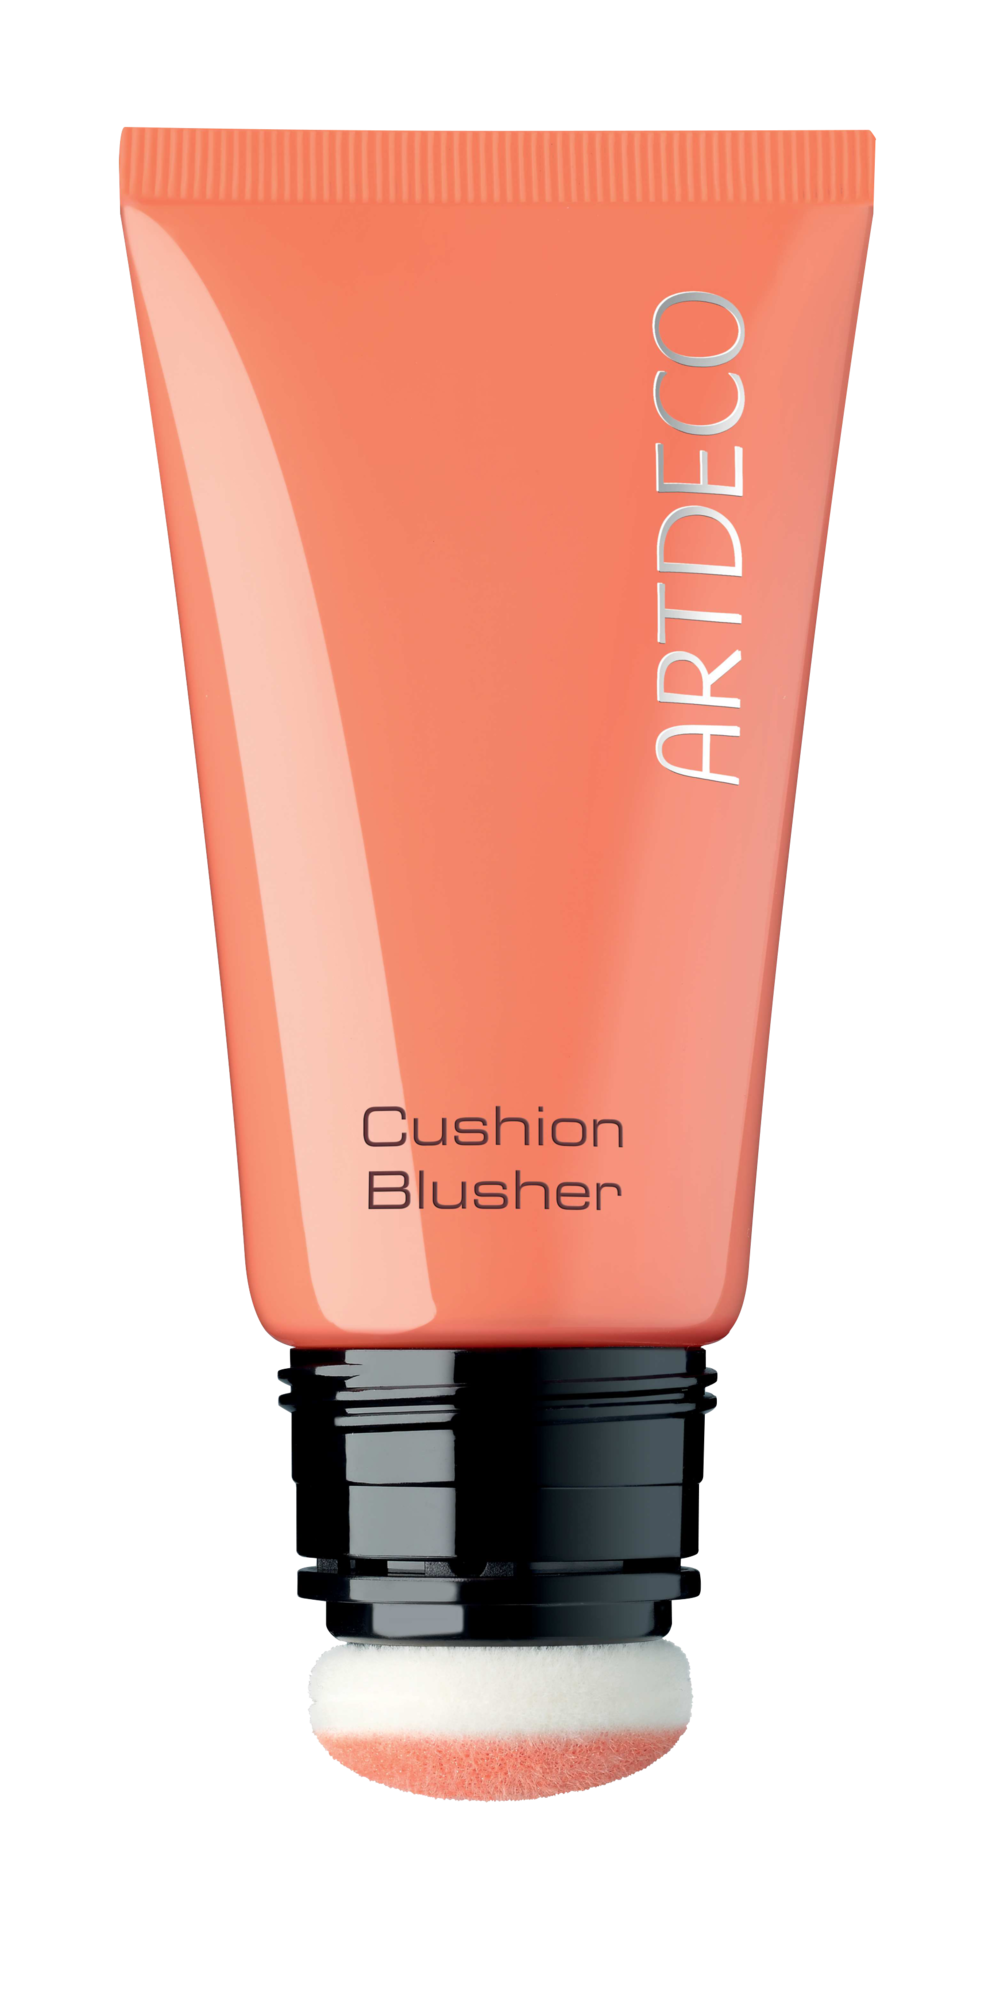 PNG-43661.4 Cushion Blusher used.png